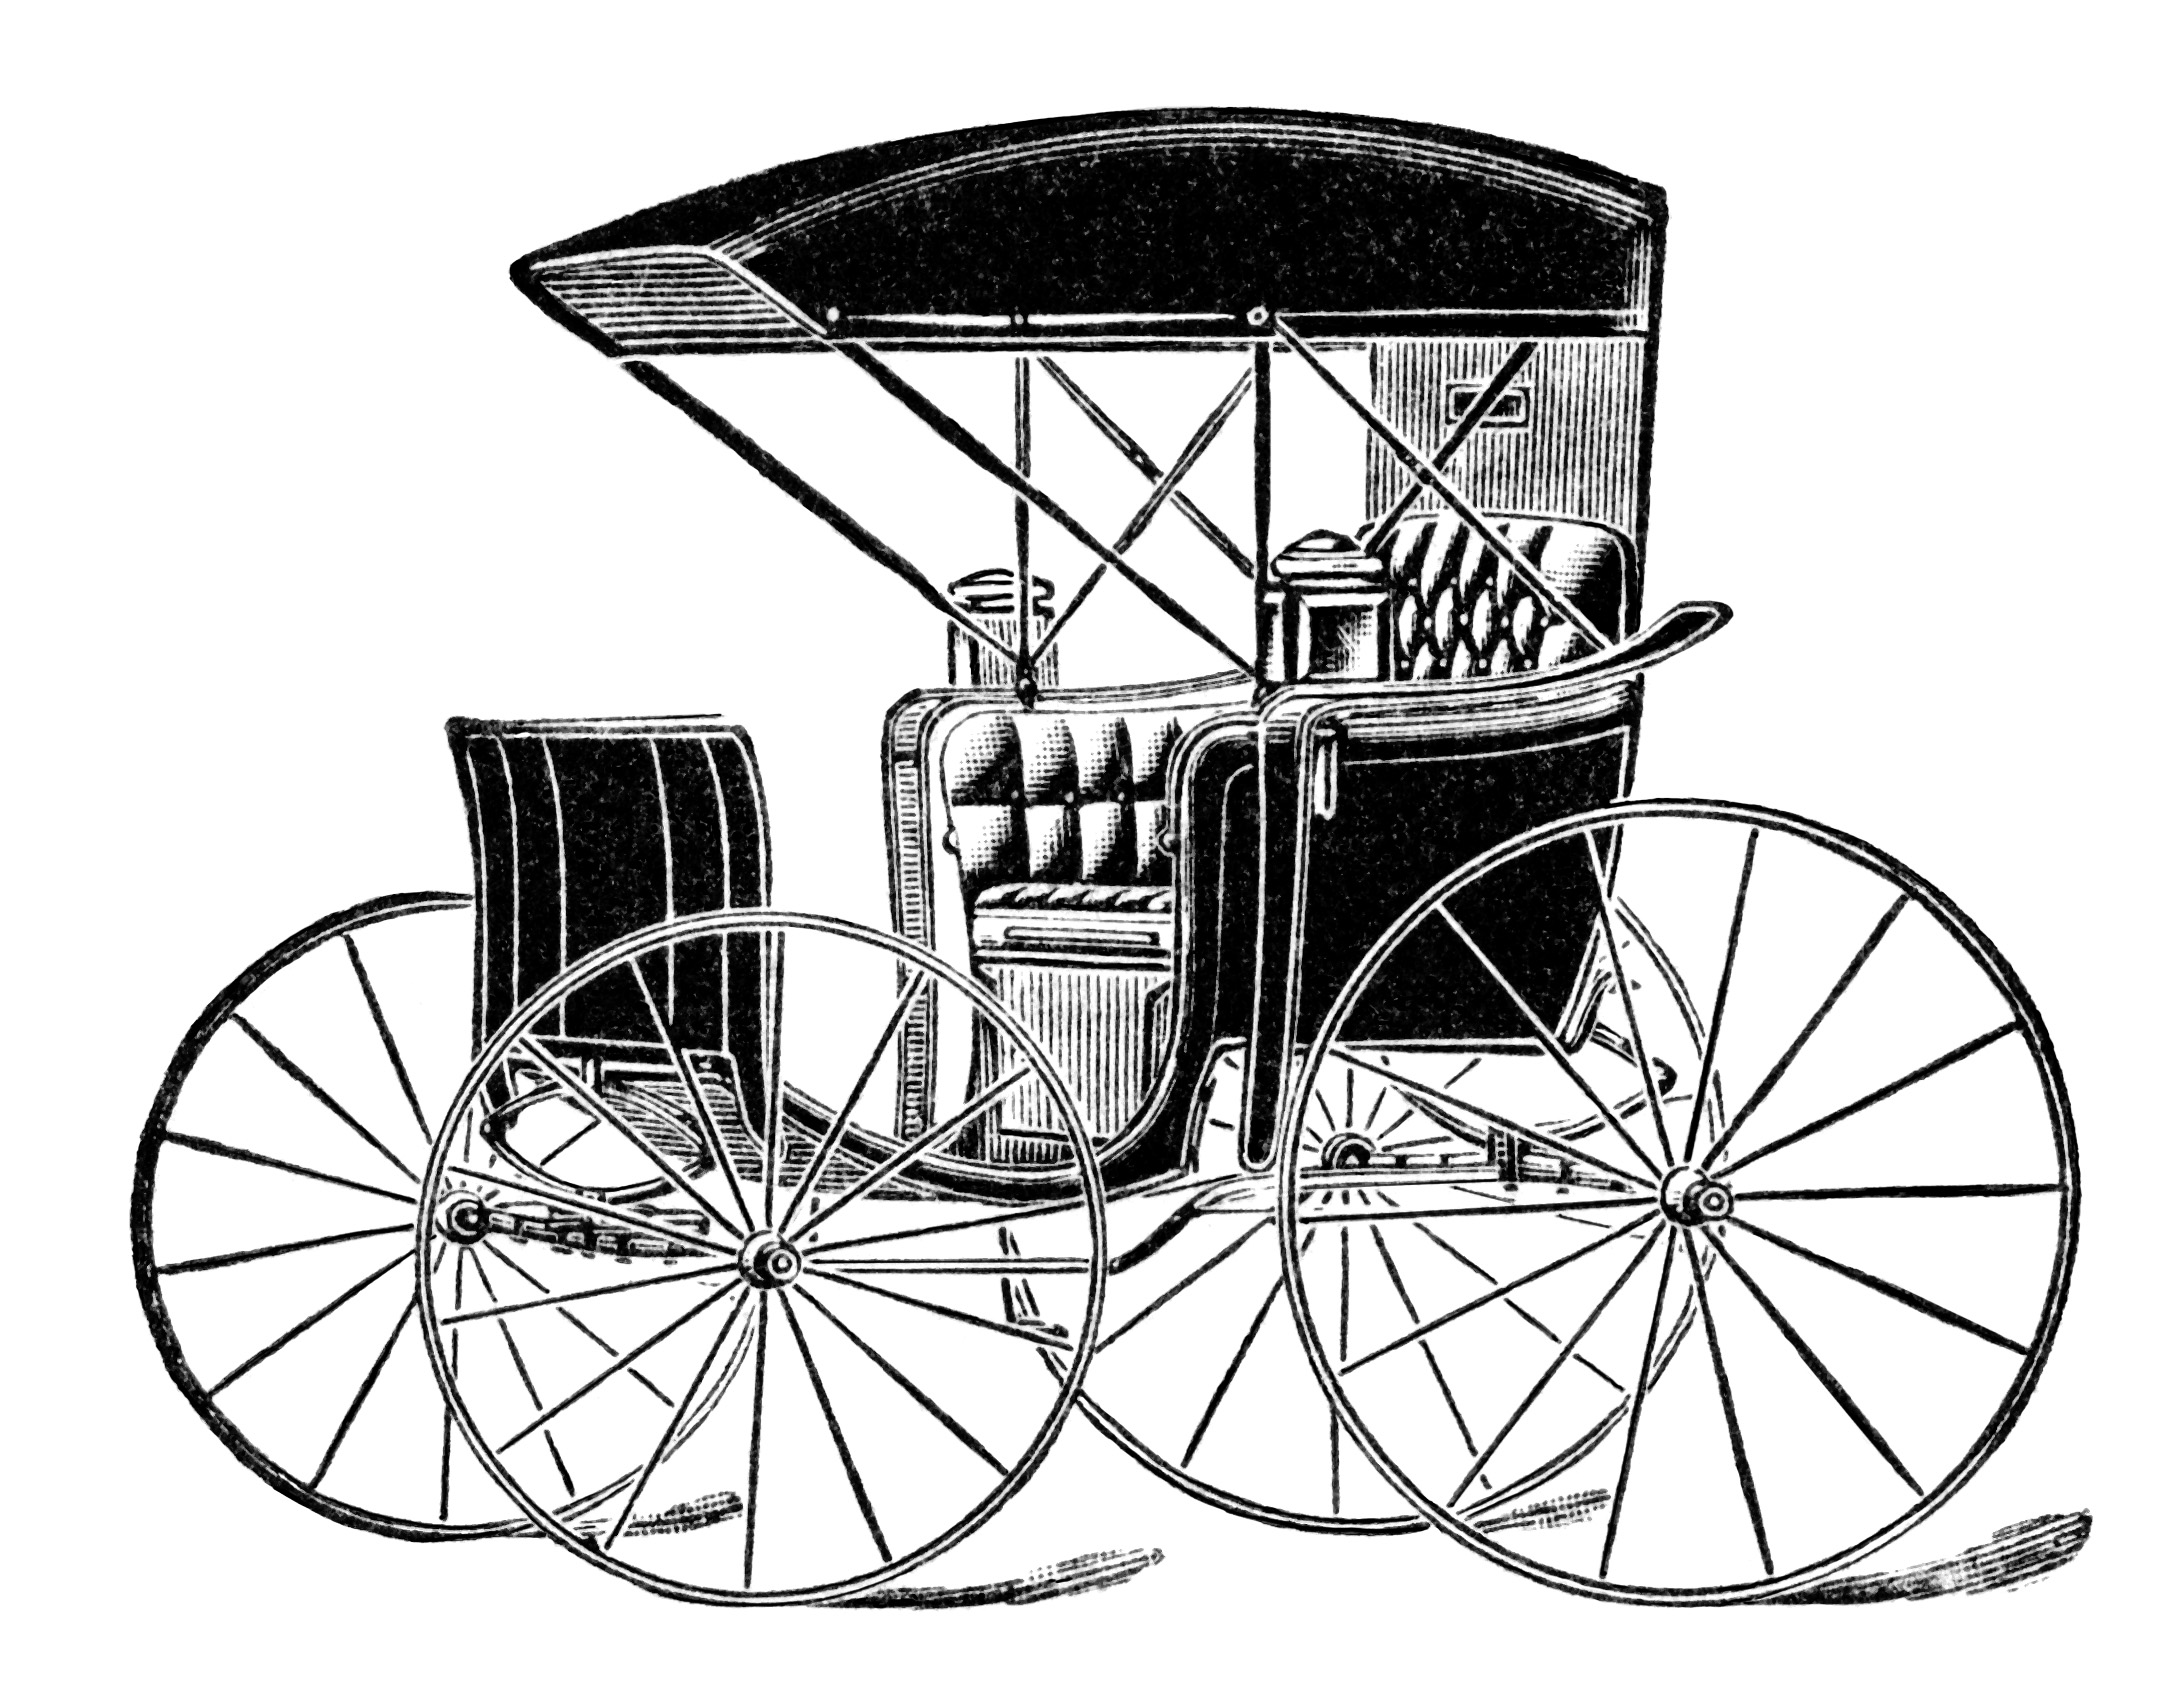 Stock Image Silhouette Horse Carriage Medieval Castle Hand Drawing Illustration Image34252421 furthermore Royalty Free Stock Photos Vector Drawing Tourist Horse Drawn Carriage Streets Valletta Malta Image30204948 likewise Download Wood Wagon Blueprints Pdf Wood Projects To Build in addition Covered Wagon Plans Pdf Plans Randkey together with Stagecoach Plans Plans Diy Free Download Skate R  Plans Pdf. on horse drawn wagon plans